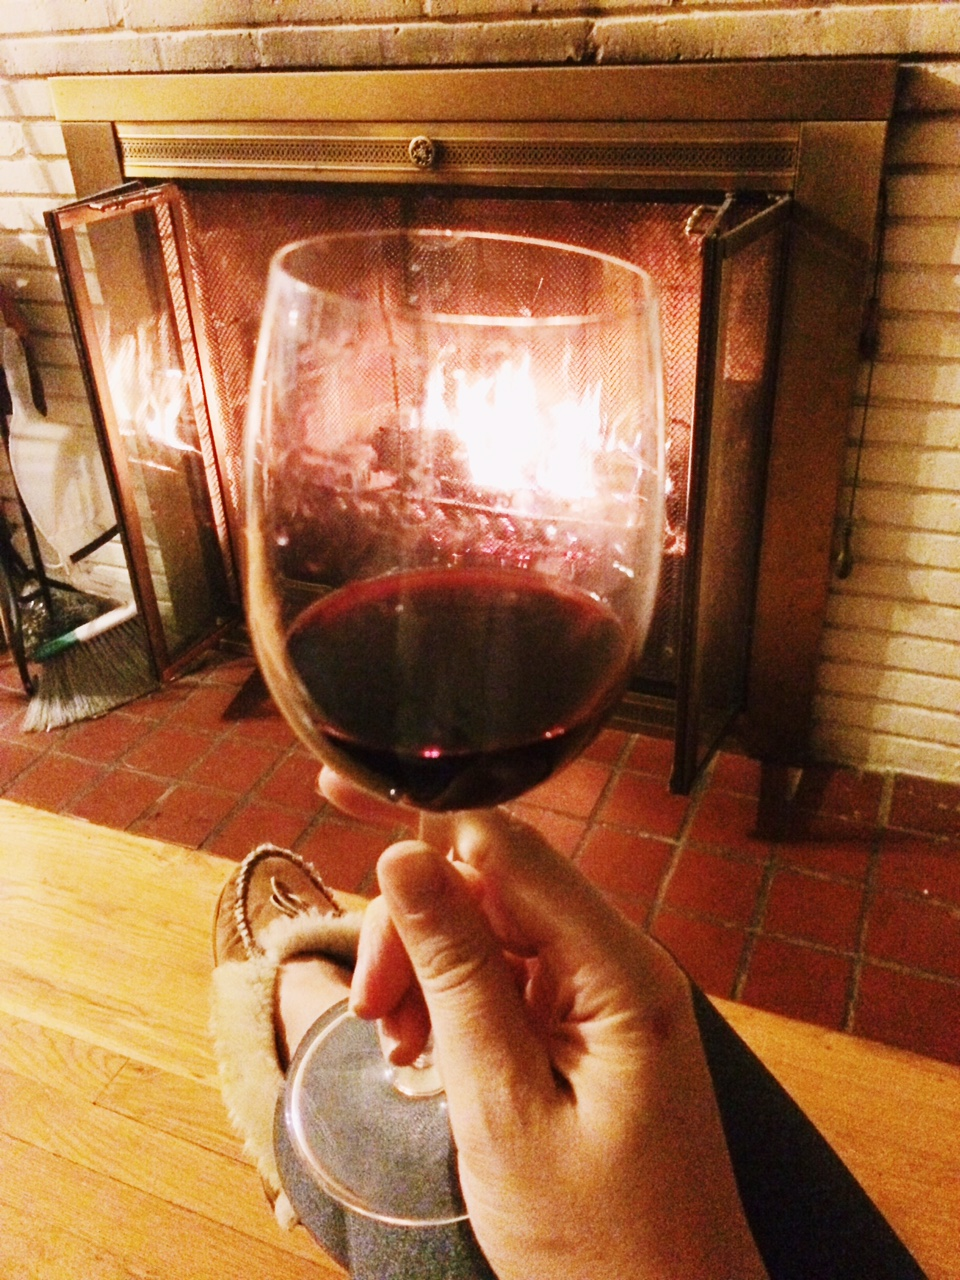 a glass of aglianico by the fire